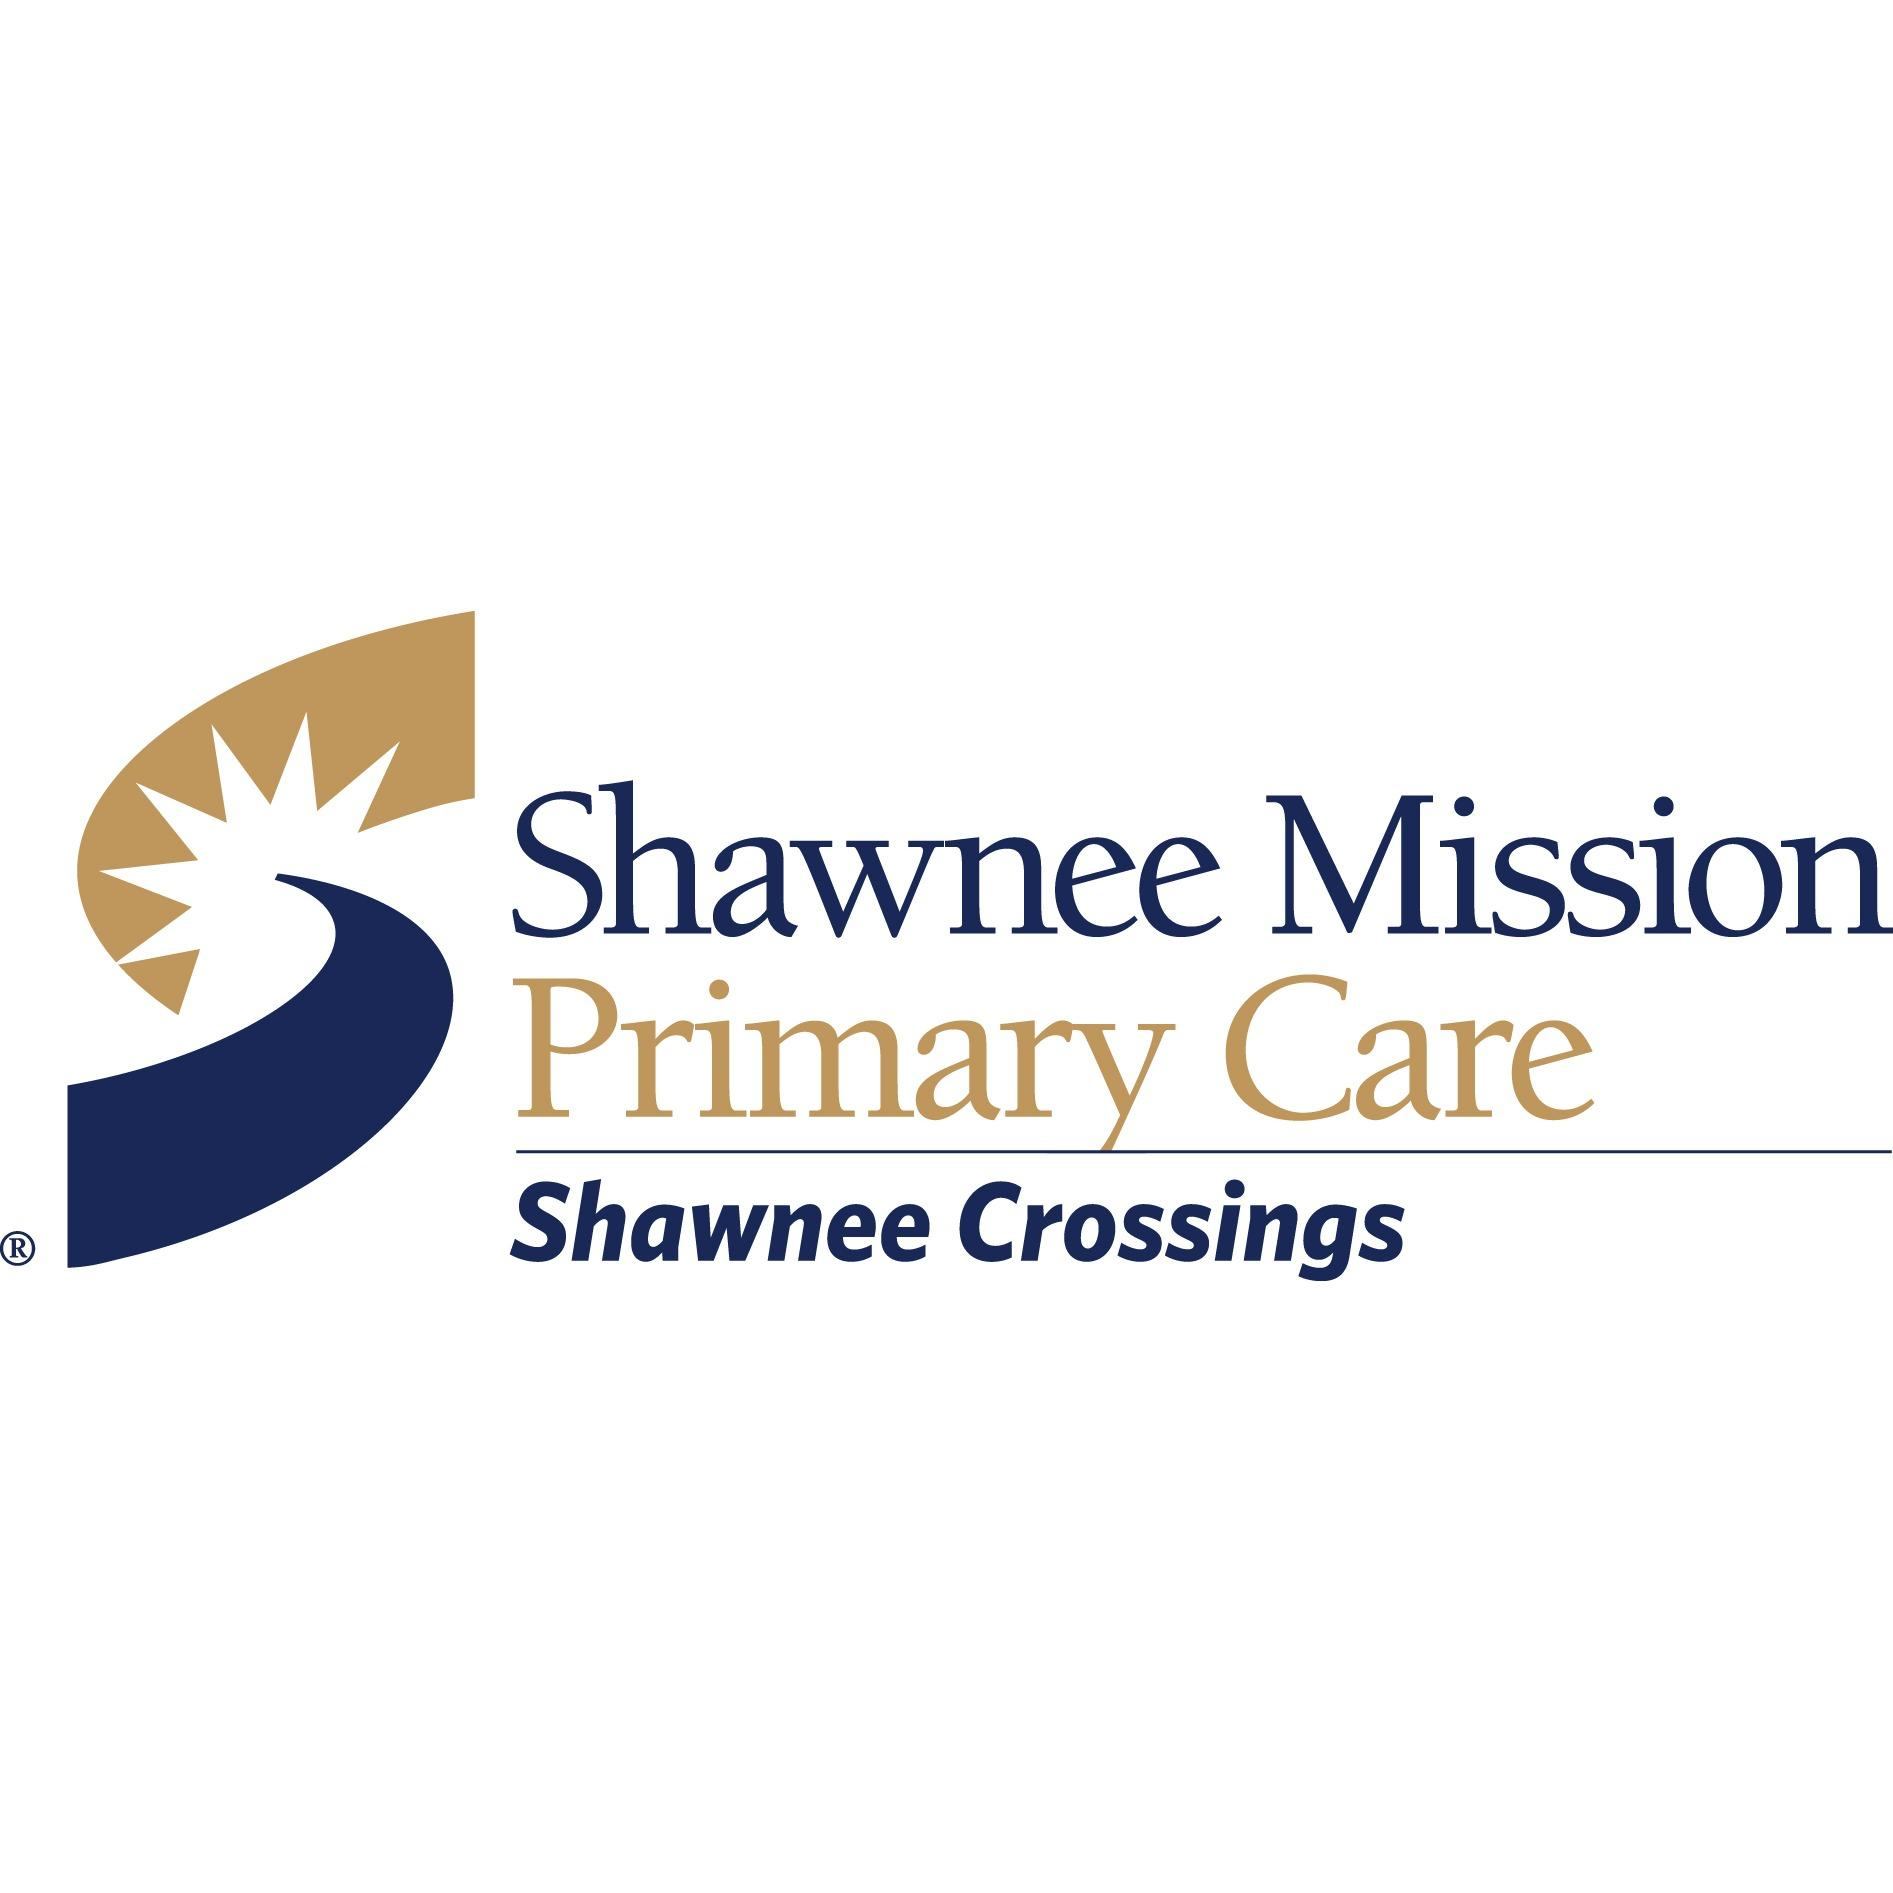 Shawnee Mission Primary Care - Shawnee Crossings - Shawnee, KS - General or Family Practice Physicians